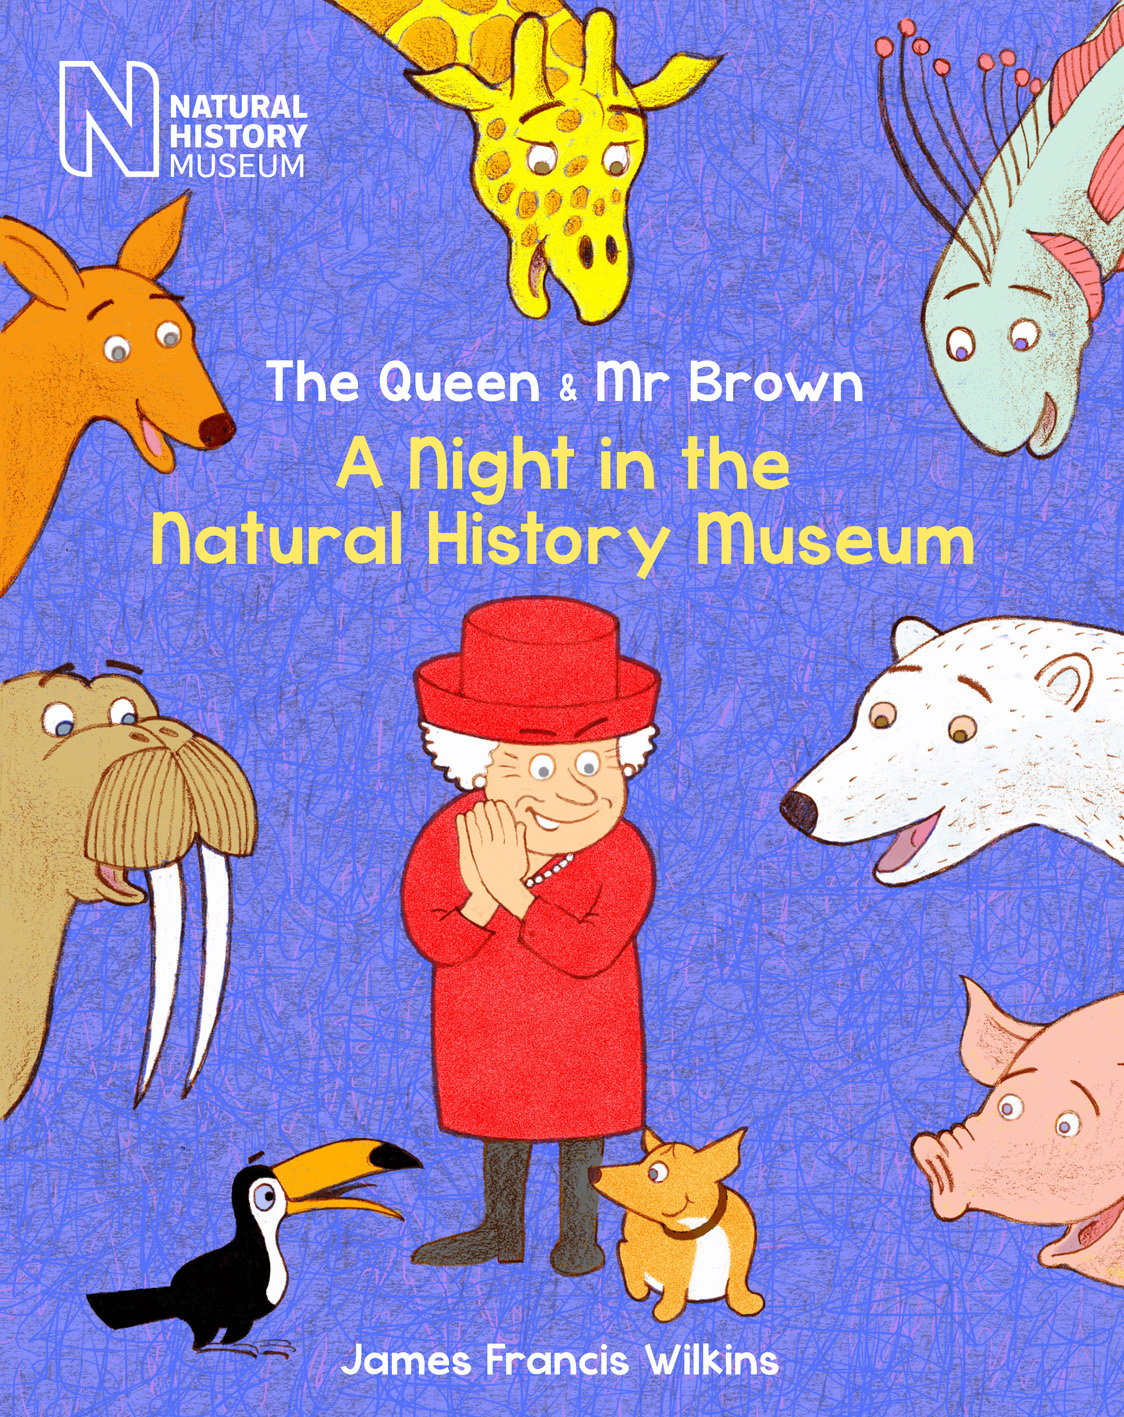 The Queen & Mr Brown www.nhmshop.co.uk